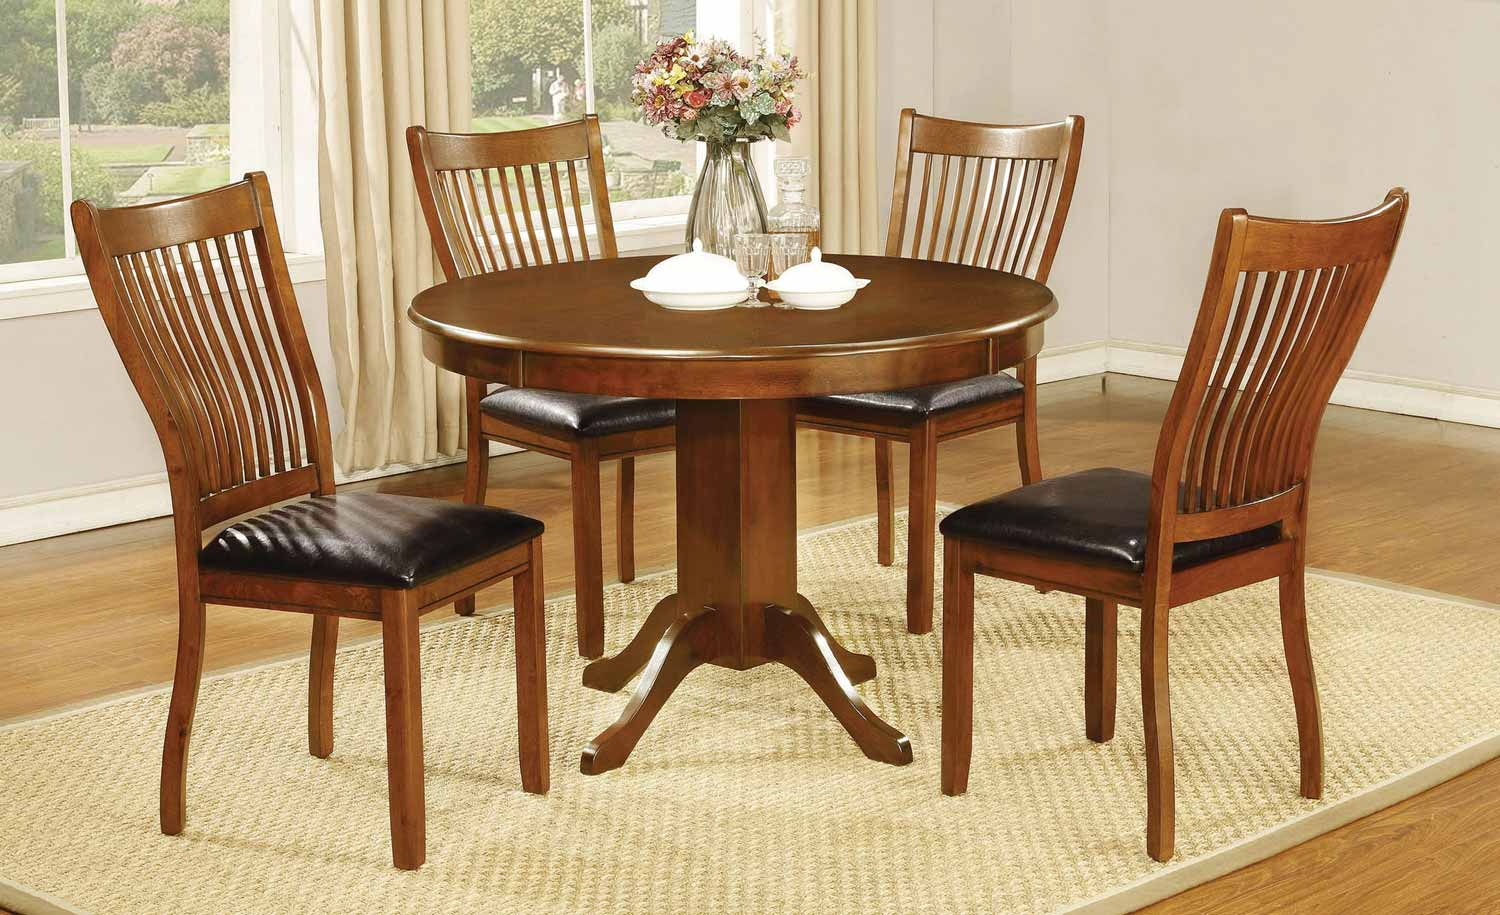 Coaster Sierra Round Dining Collection - Amber/Black Leatherette